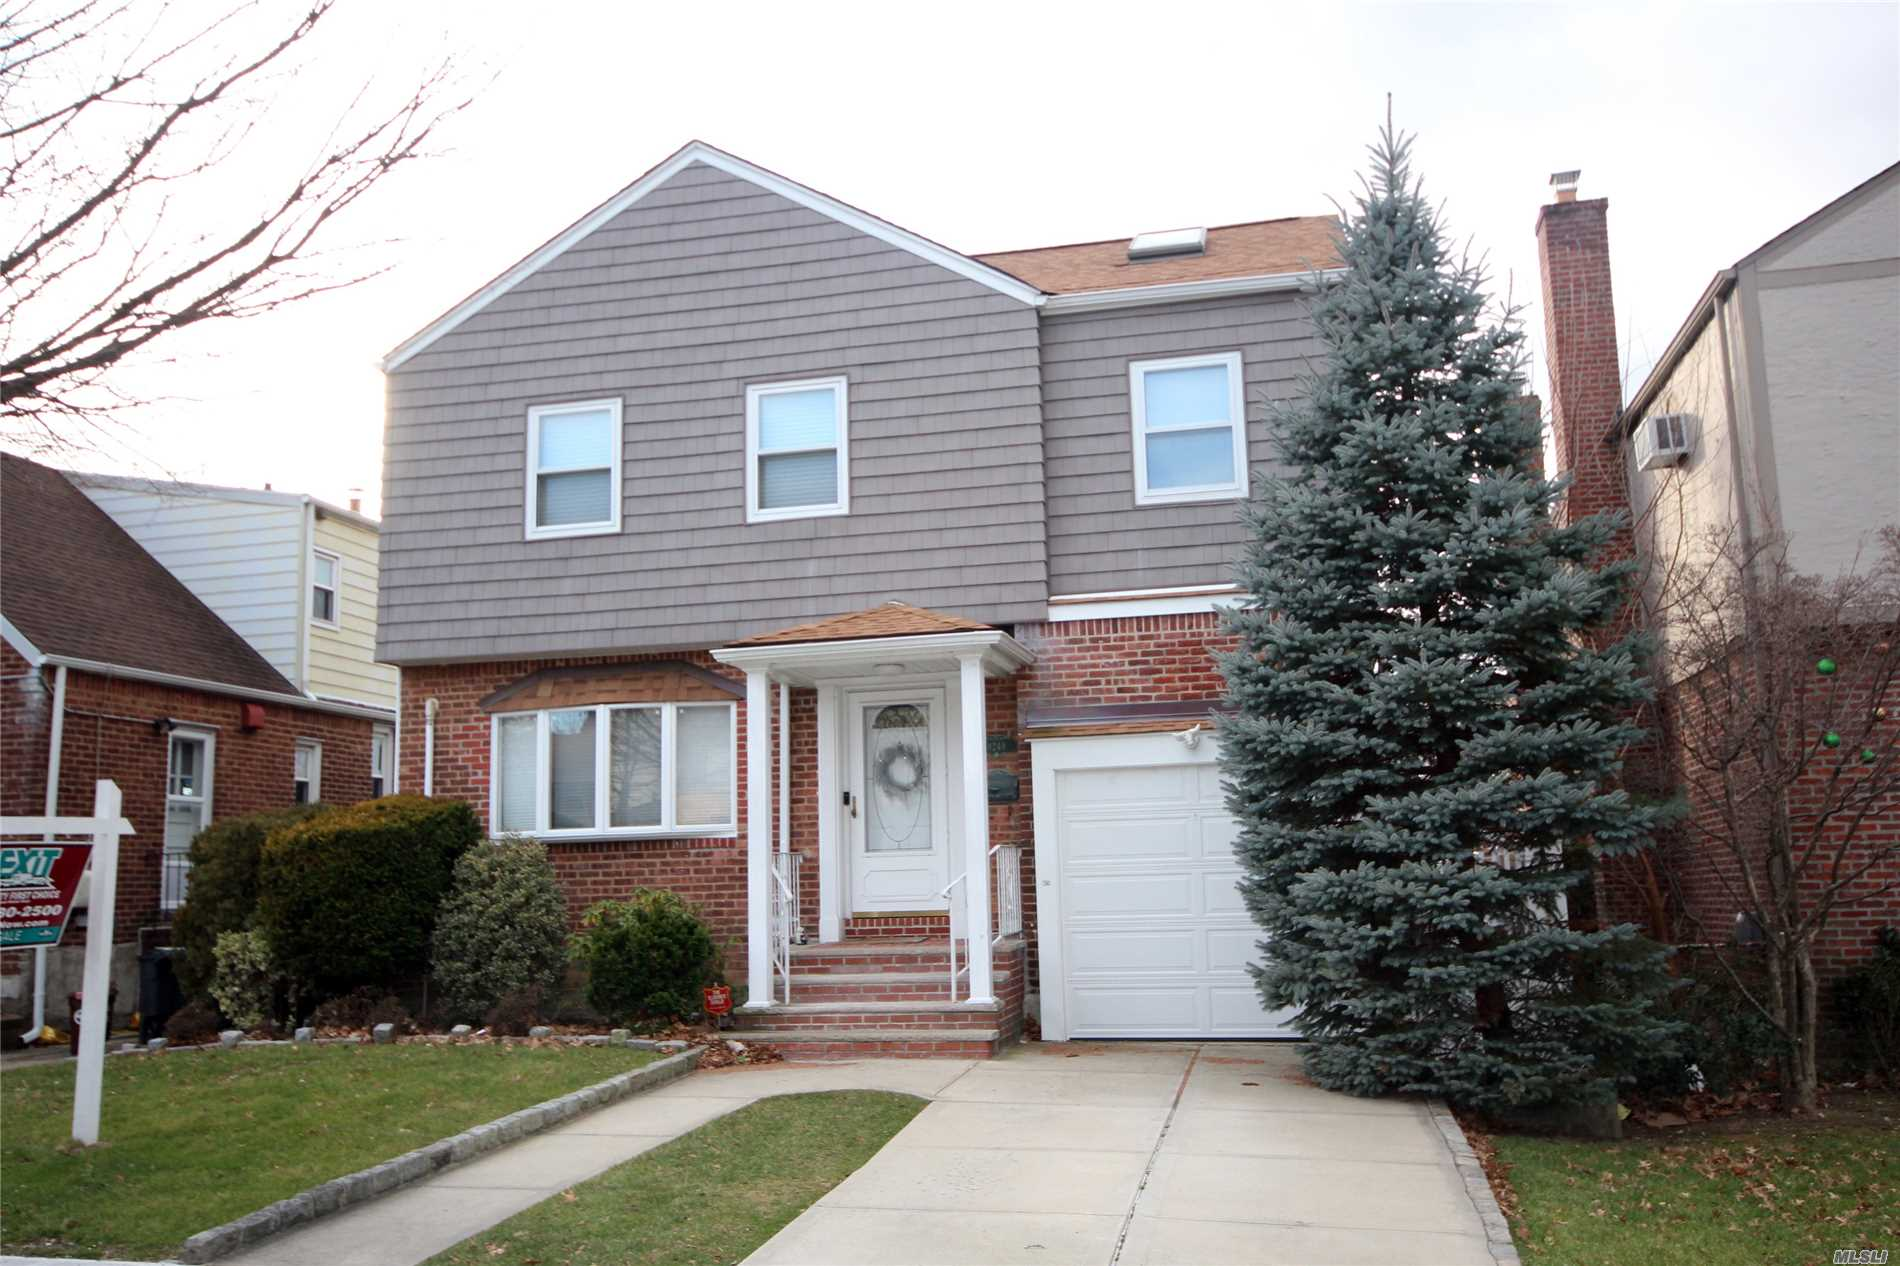 A Gorgeous, Totally Renovated Colonial House Located In The Heart Of Hollis Hills. The House Features Living Room, Formal Dining Room, Large Custom Eat-In-Kitchen, Large Den, 3-Bedrooms, One Bedroom Has A Stairs To A Mezzanine Style Room, 2.5 Bathrooms, Finished Basement With A Bath And A Laundry Room. In Addition, The House Has New Roof, Split Units In Every Room A/C And Heat, Updated 200 Amp Electric Wiring, 3-Skylights, New Siding, 'Smart House', Large Deck And 1-Car Garage. A Must See House!!